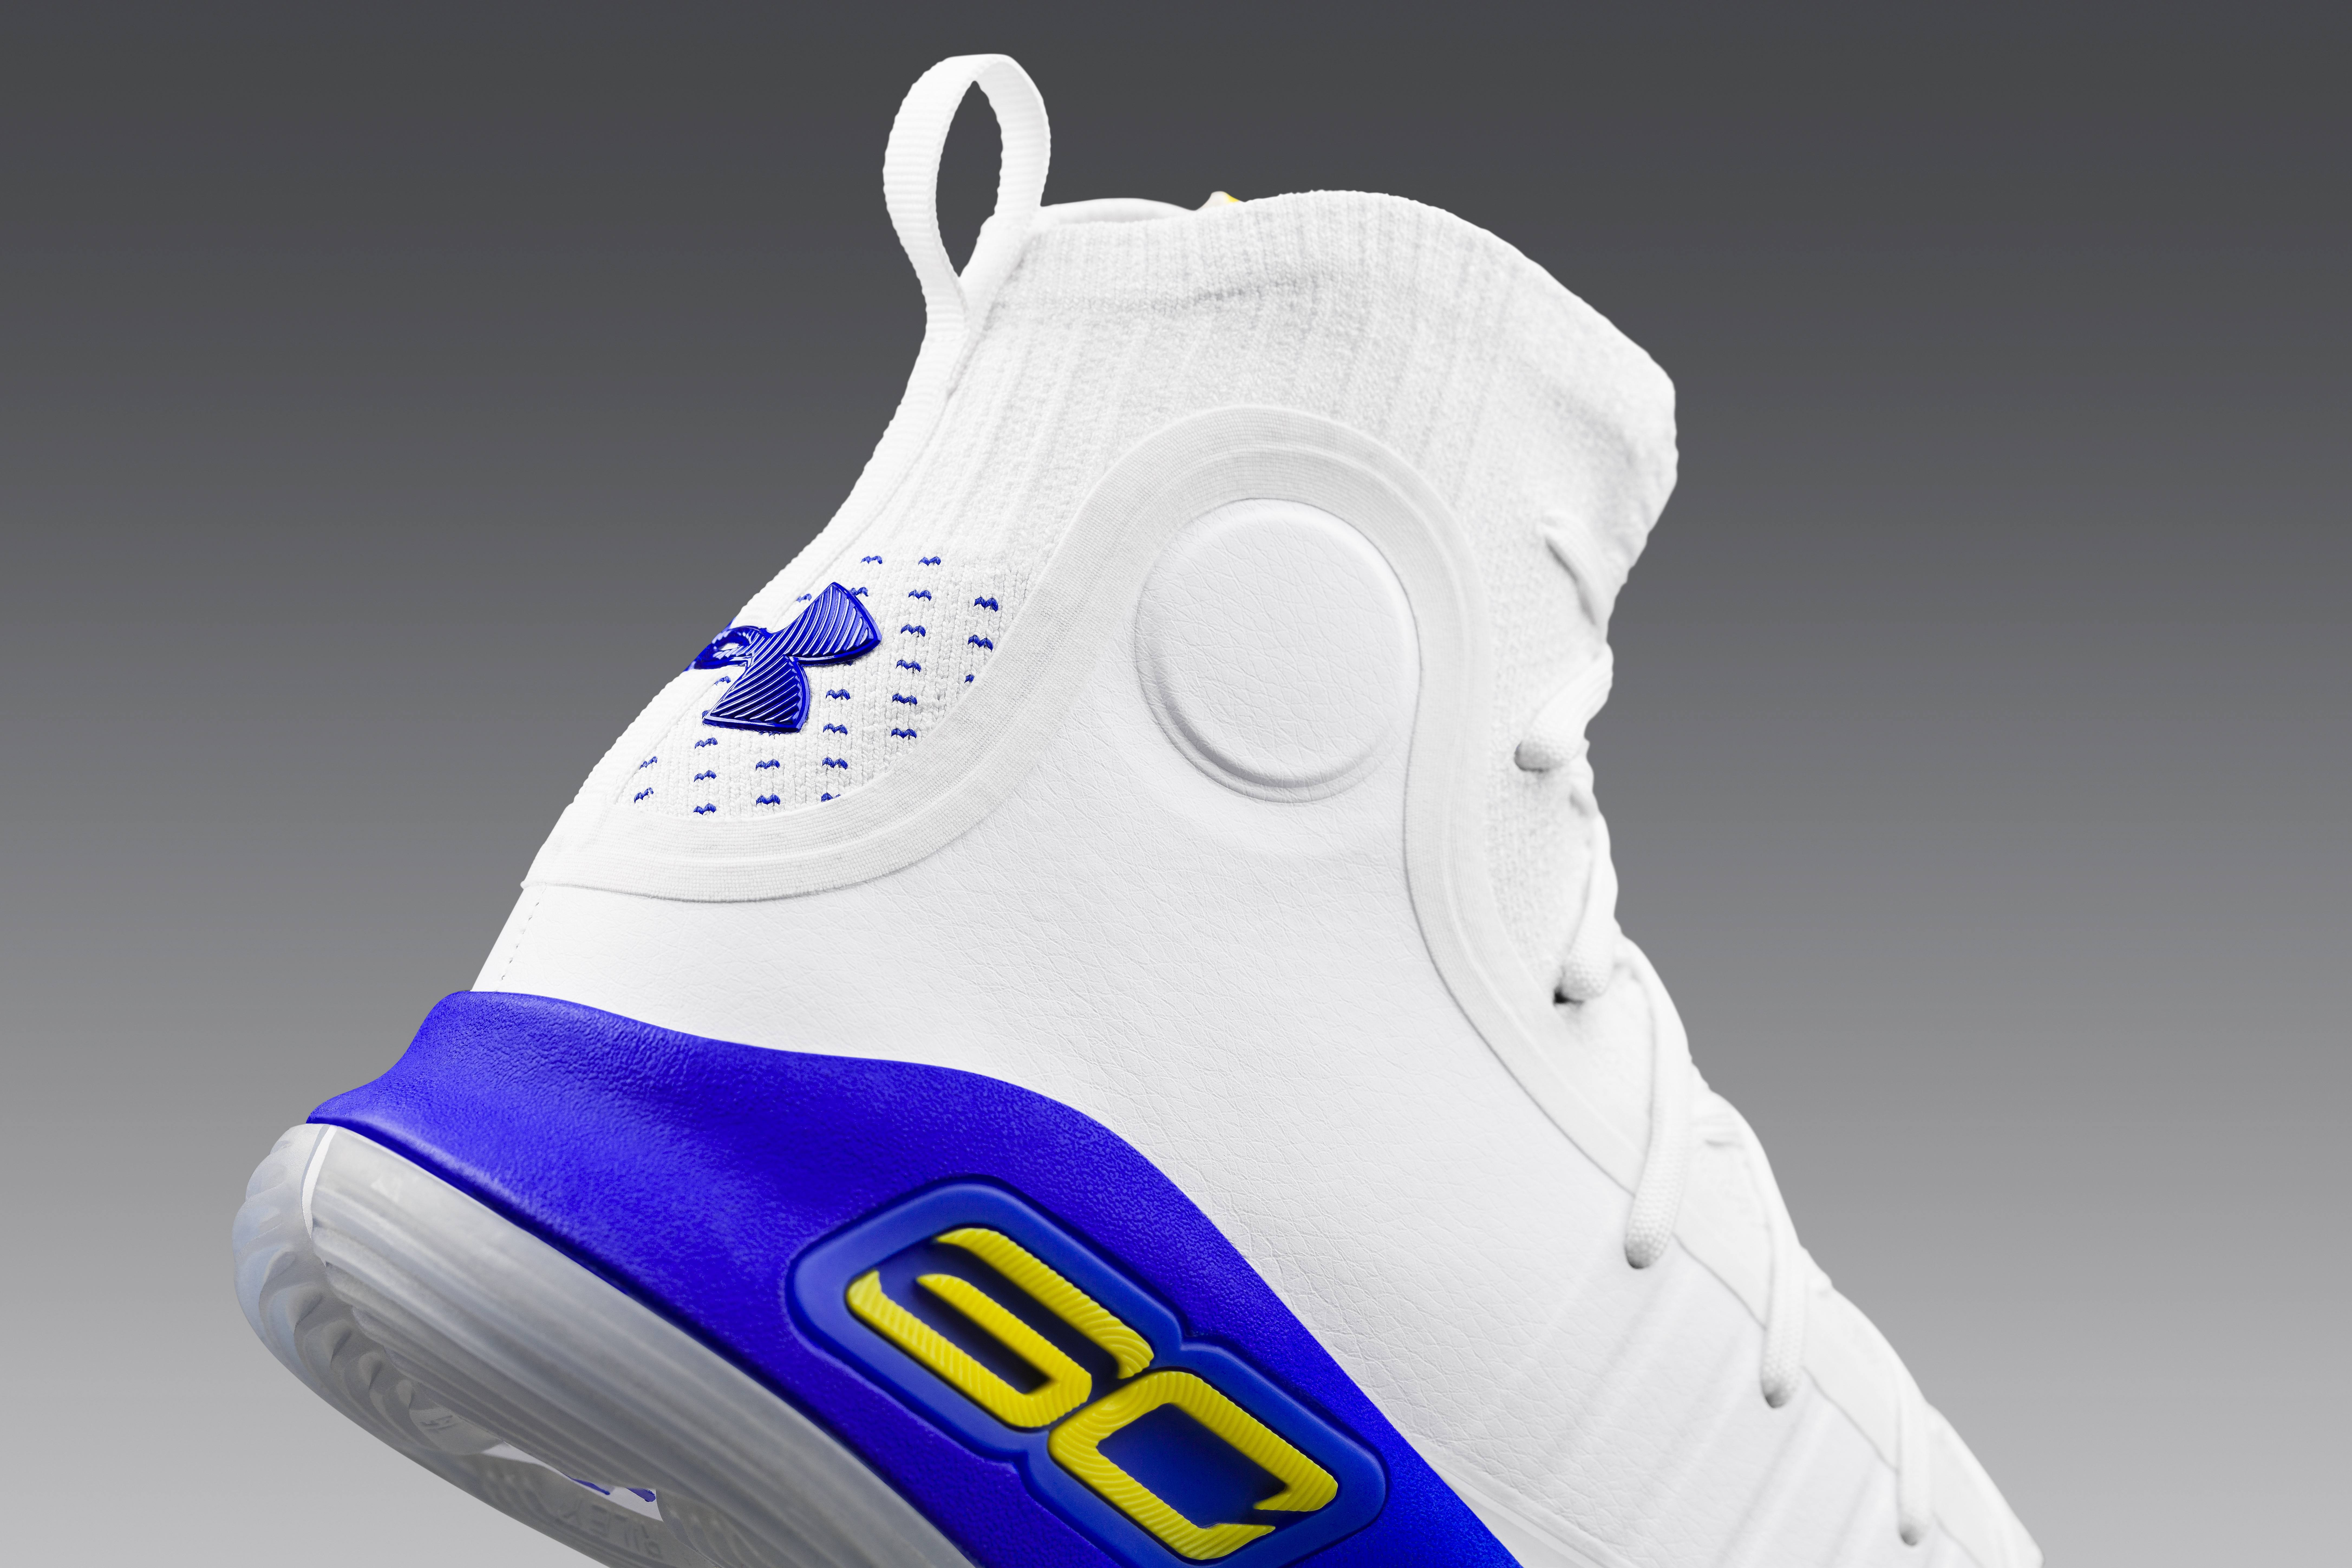 Stephen Curry Under Armour Shoes Flown